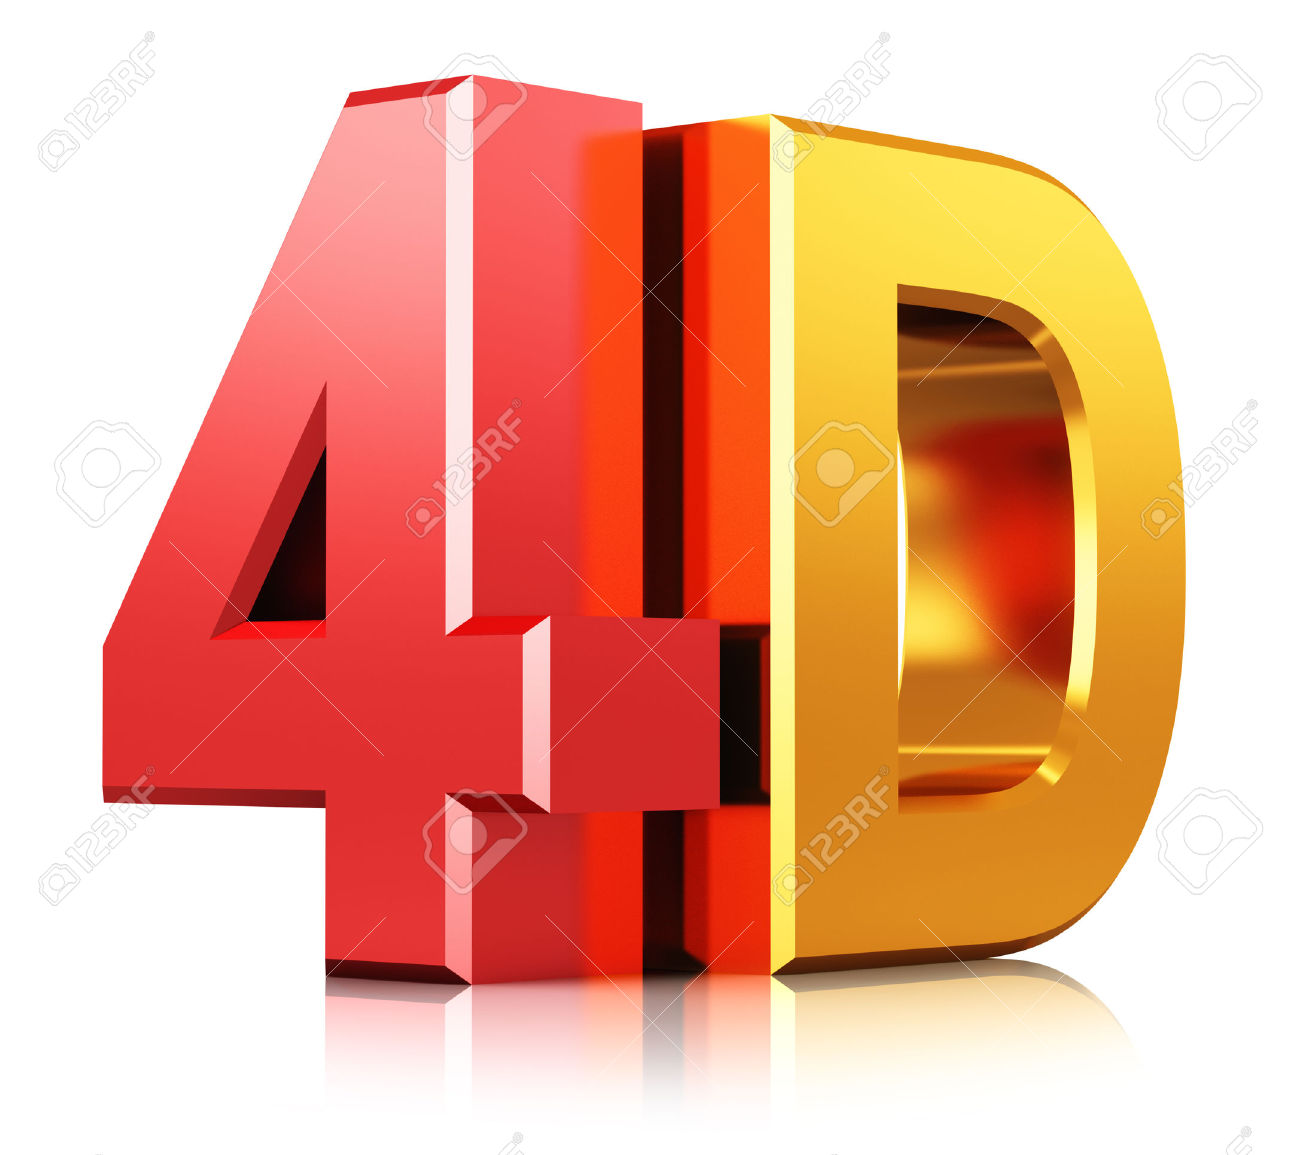 Creative Abstract Four Dimensional Digital Cinema Industry